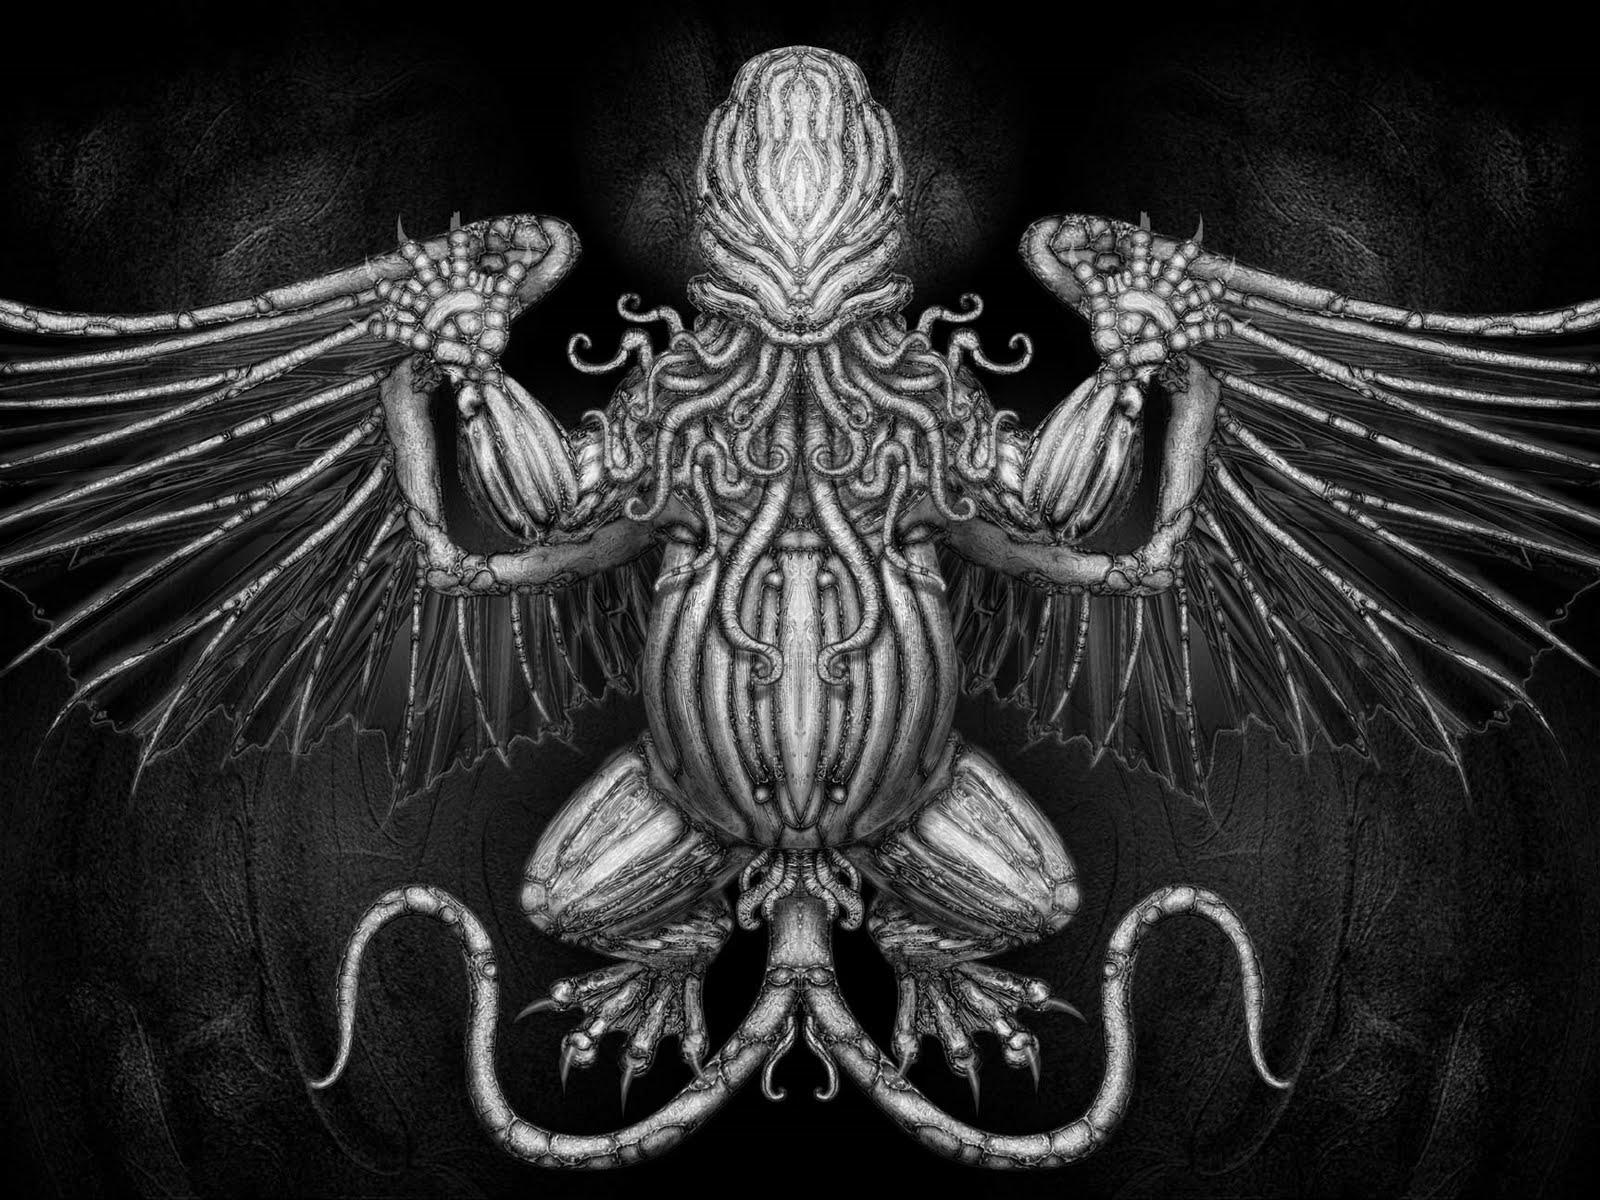 Cthulhu wallpapers HD quality